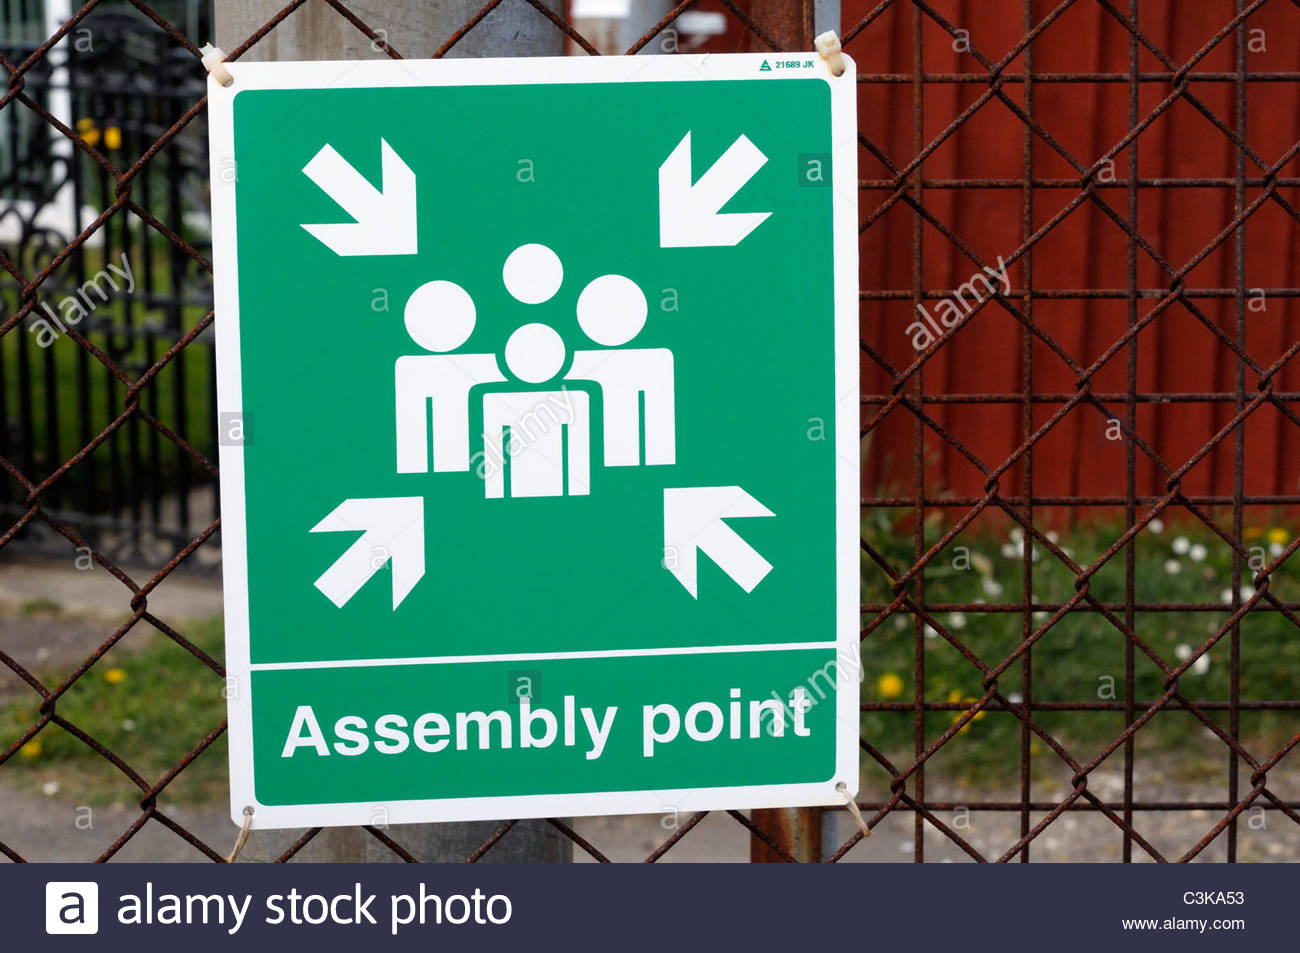 Fire assembly point sign, Sturminster Newton, Dorset England - Stock Image